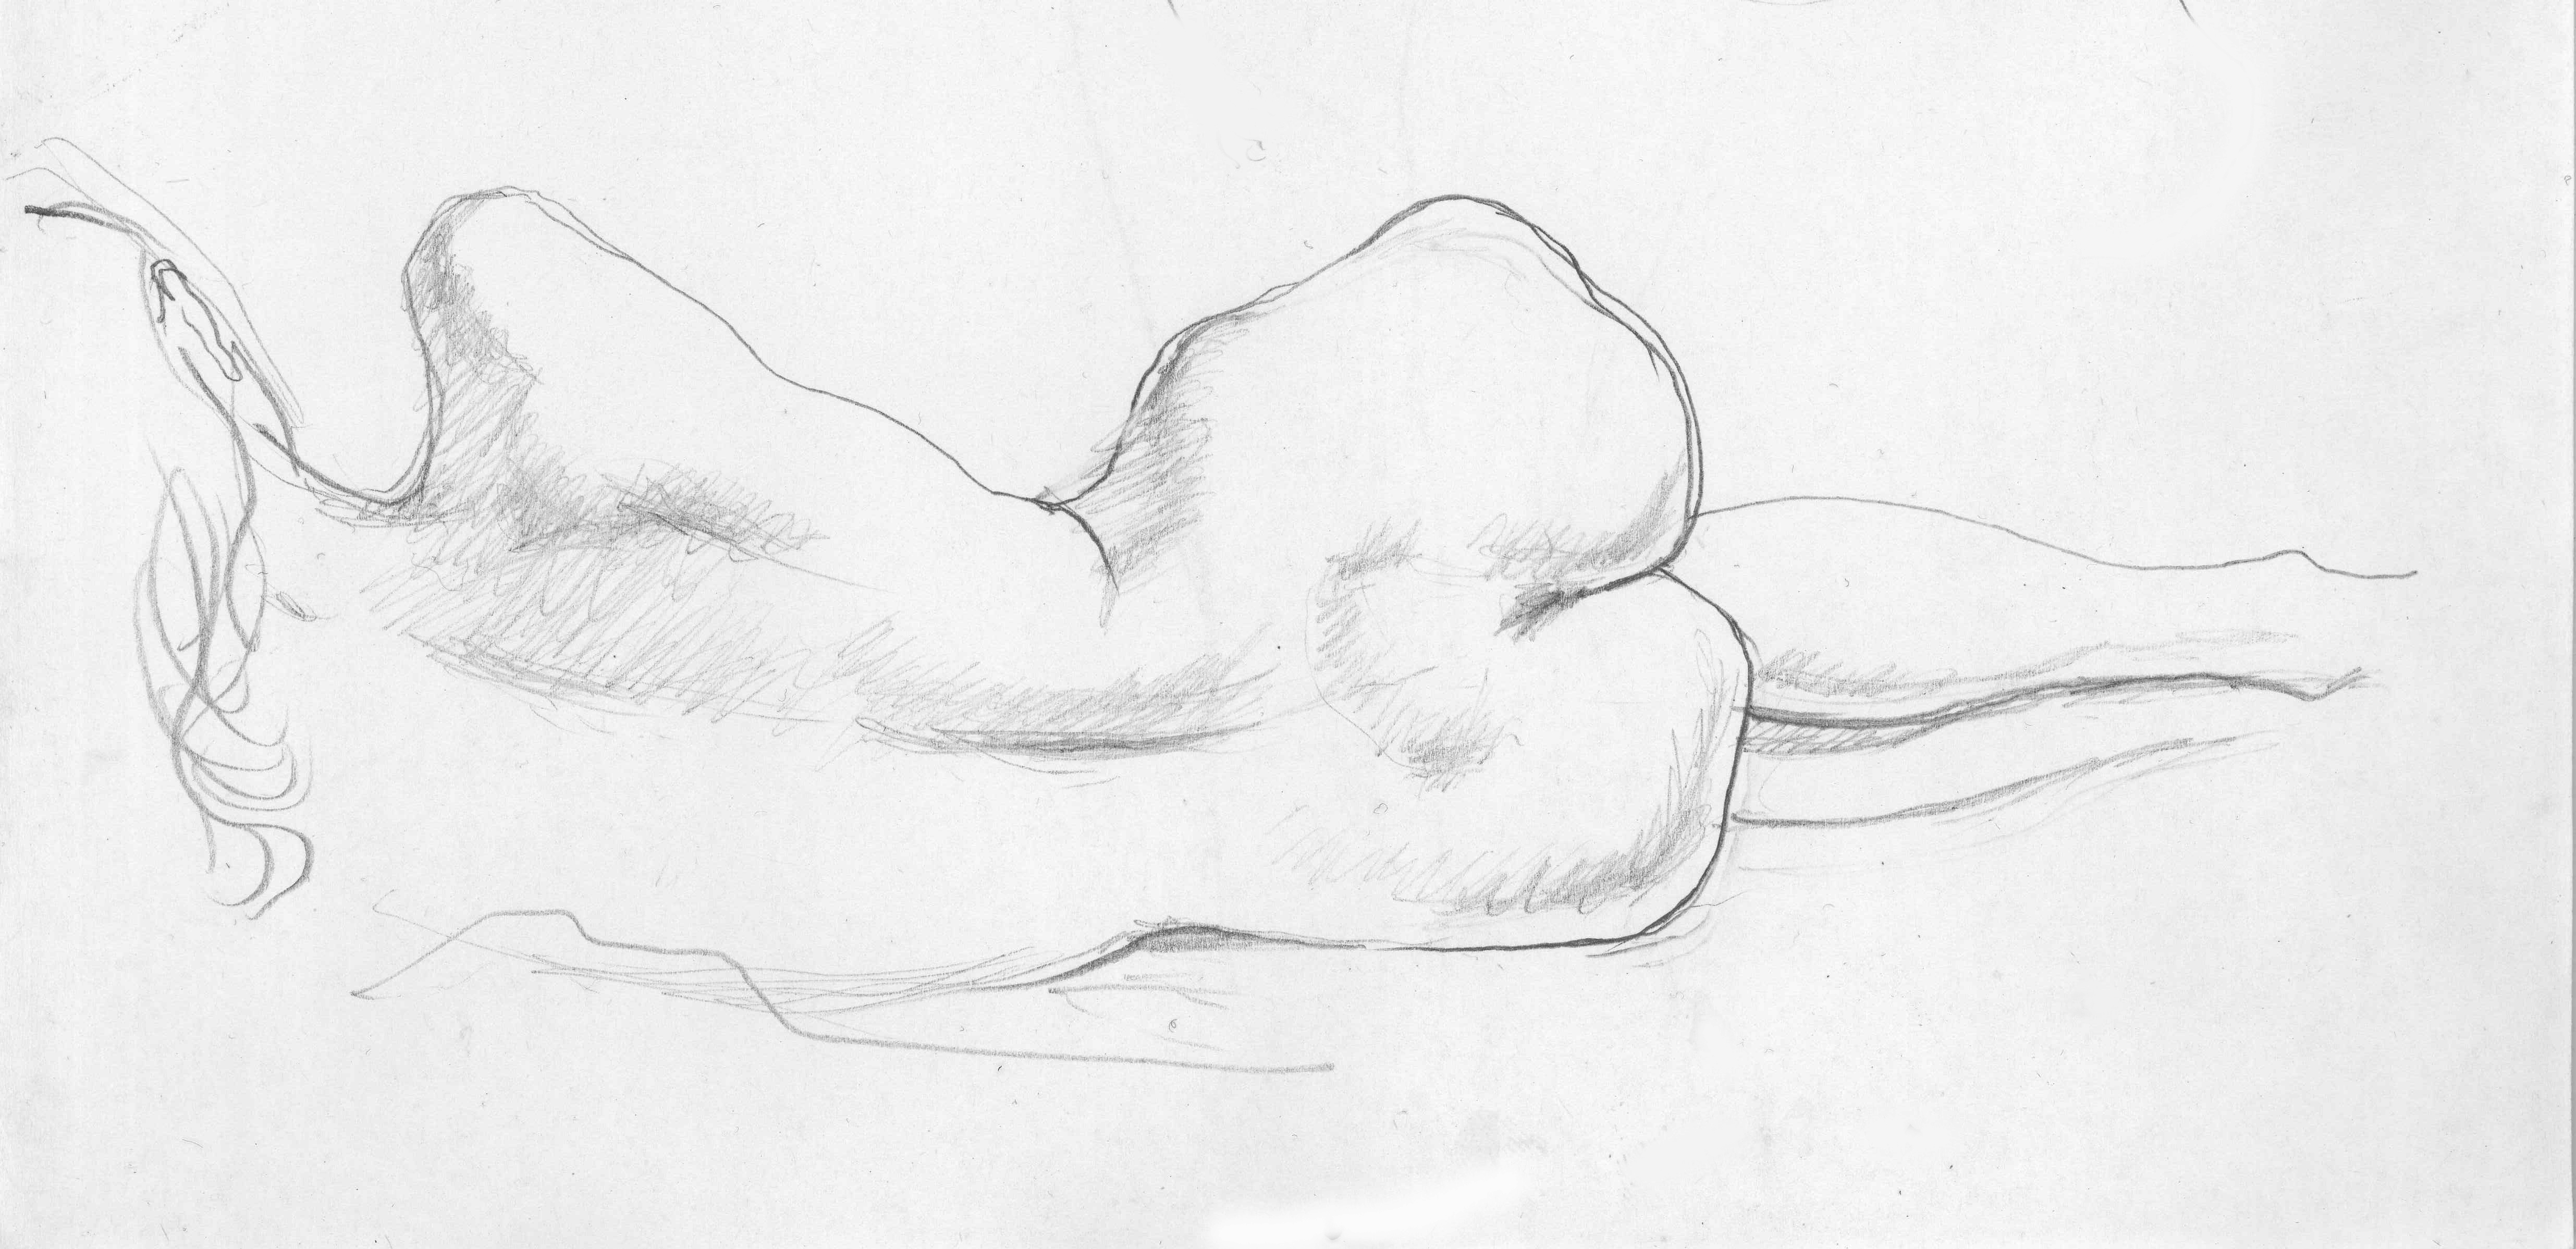 Nude pencil drawings xxx porno galleries